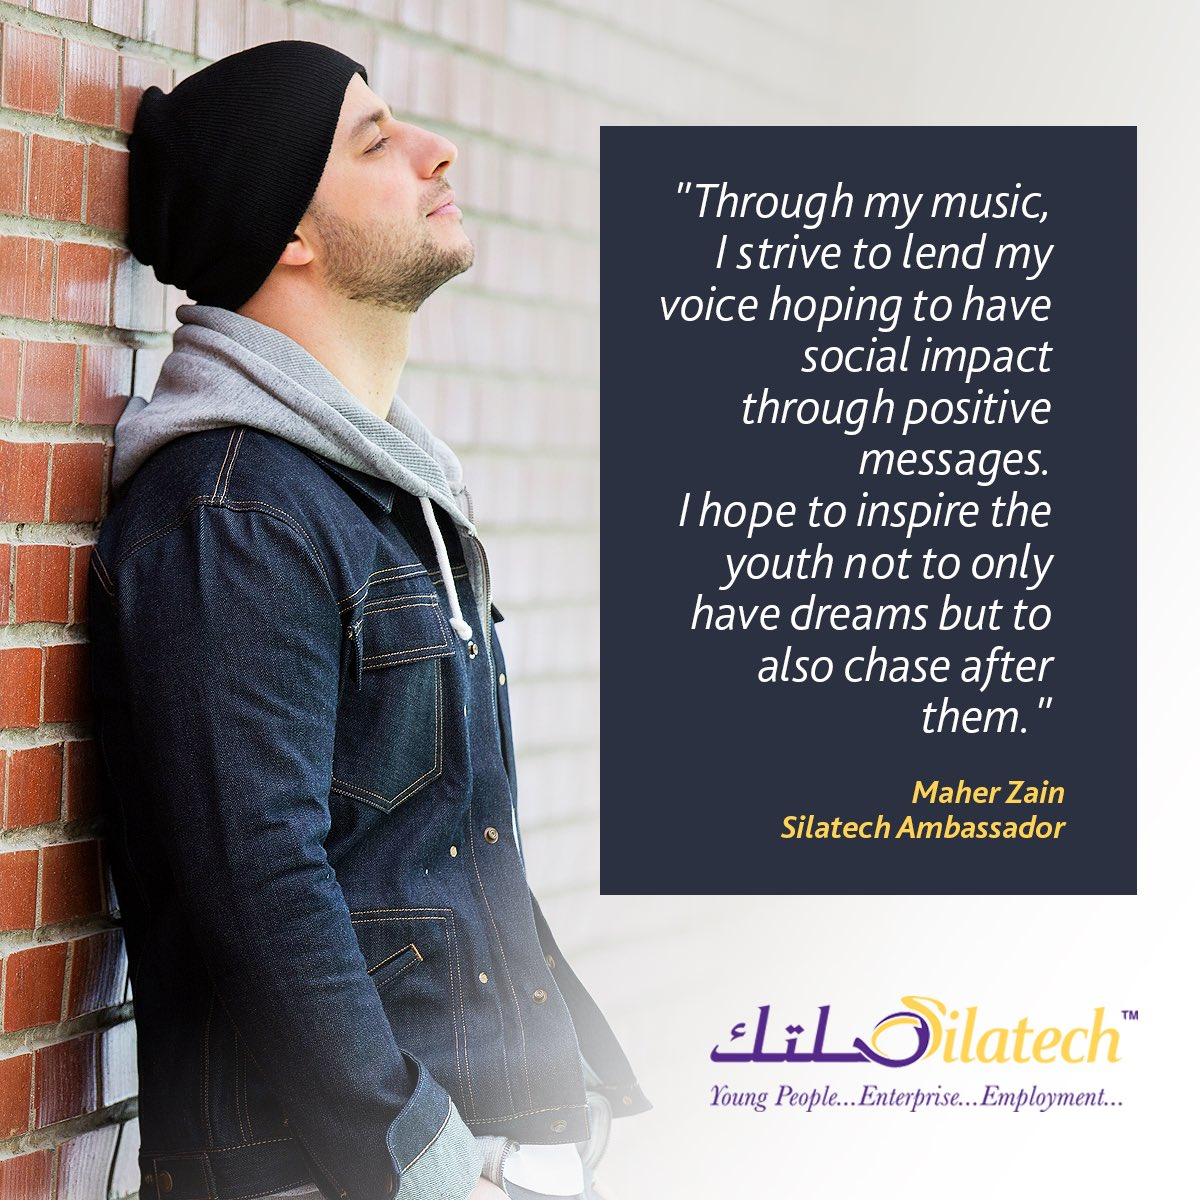 I hope to inspire the youth not to only have dreams but to also chase after them. #Youth #dreams   @Silatech